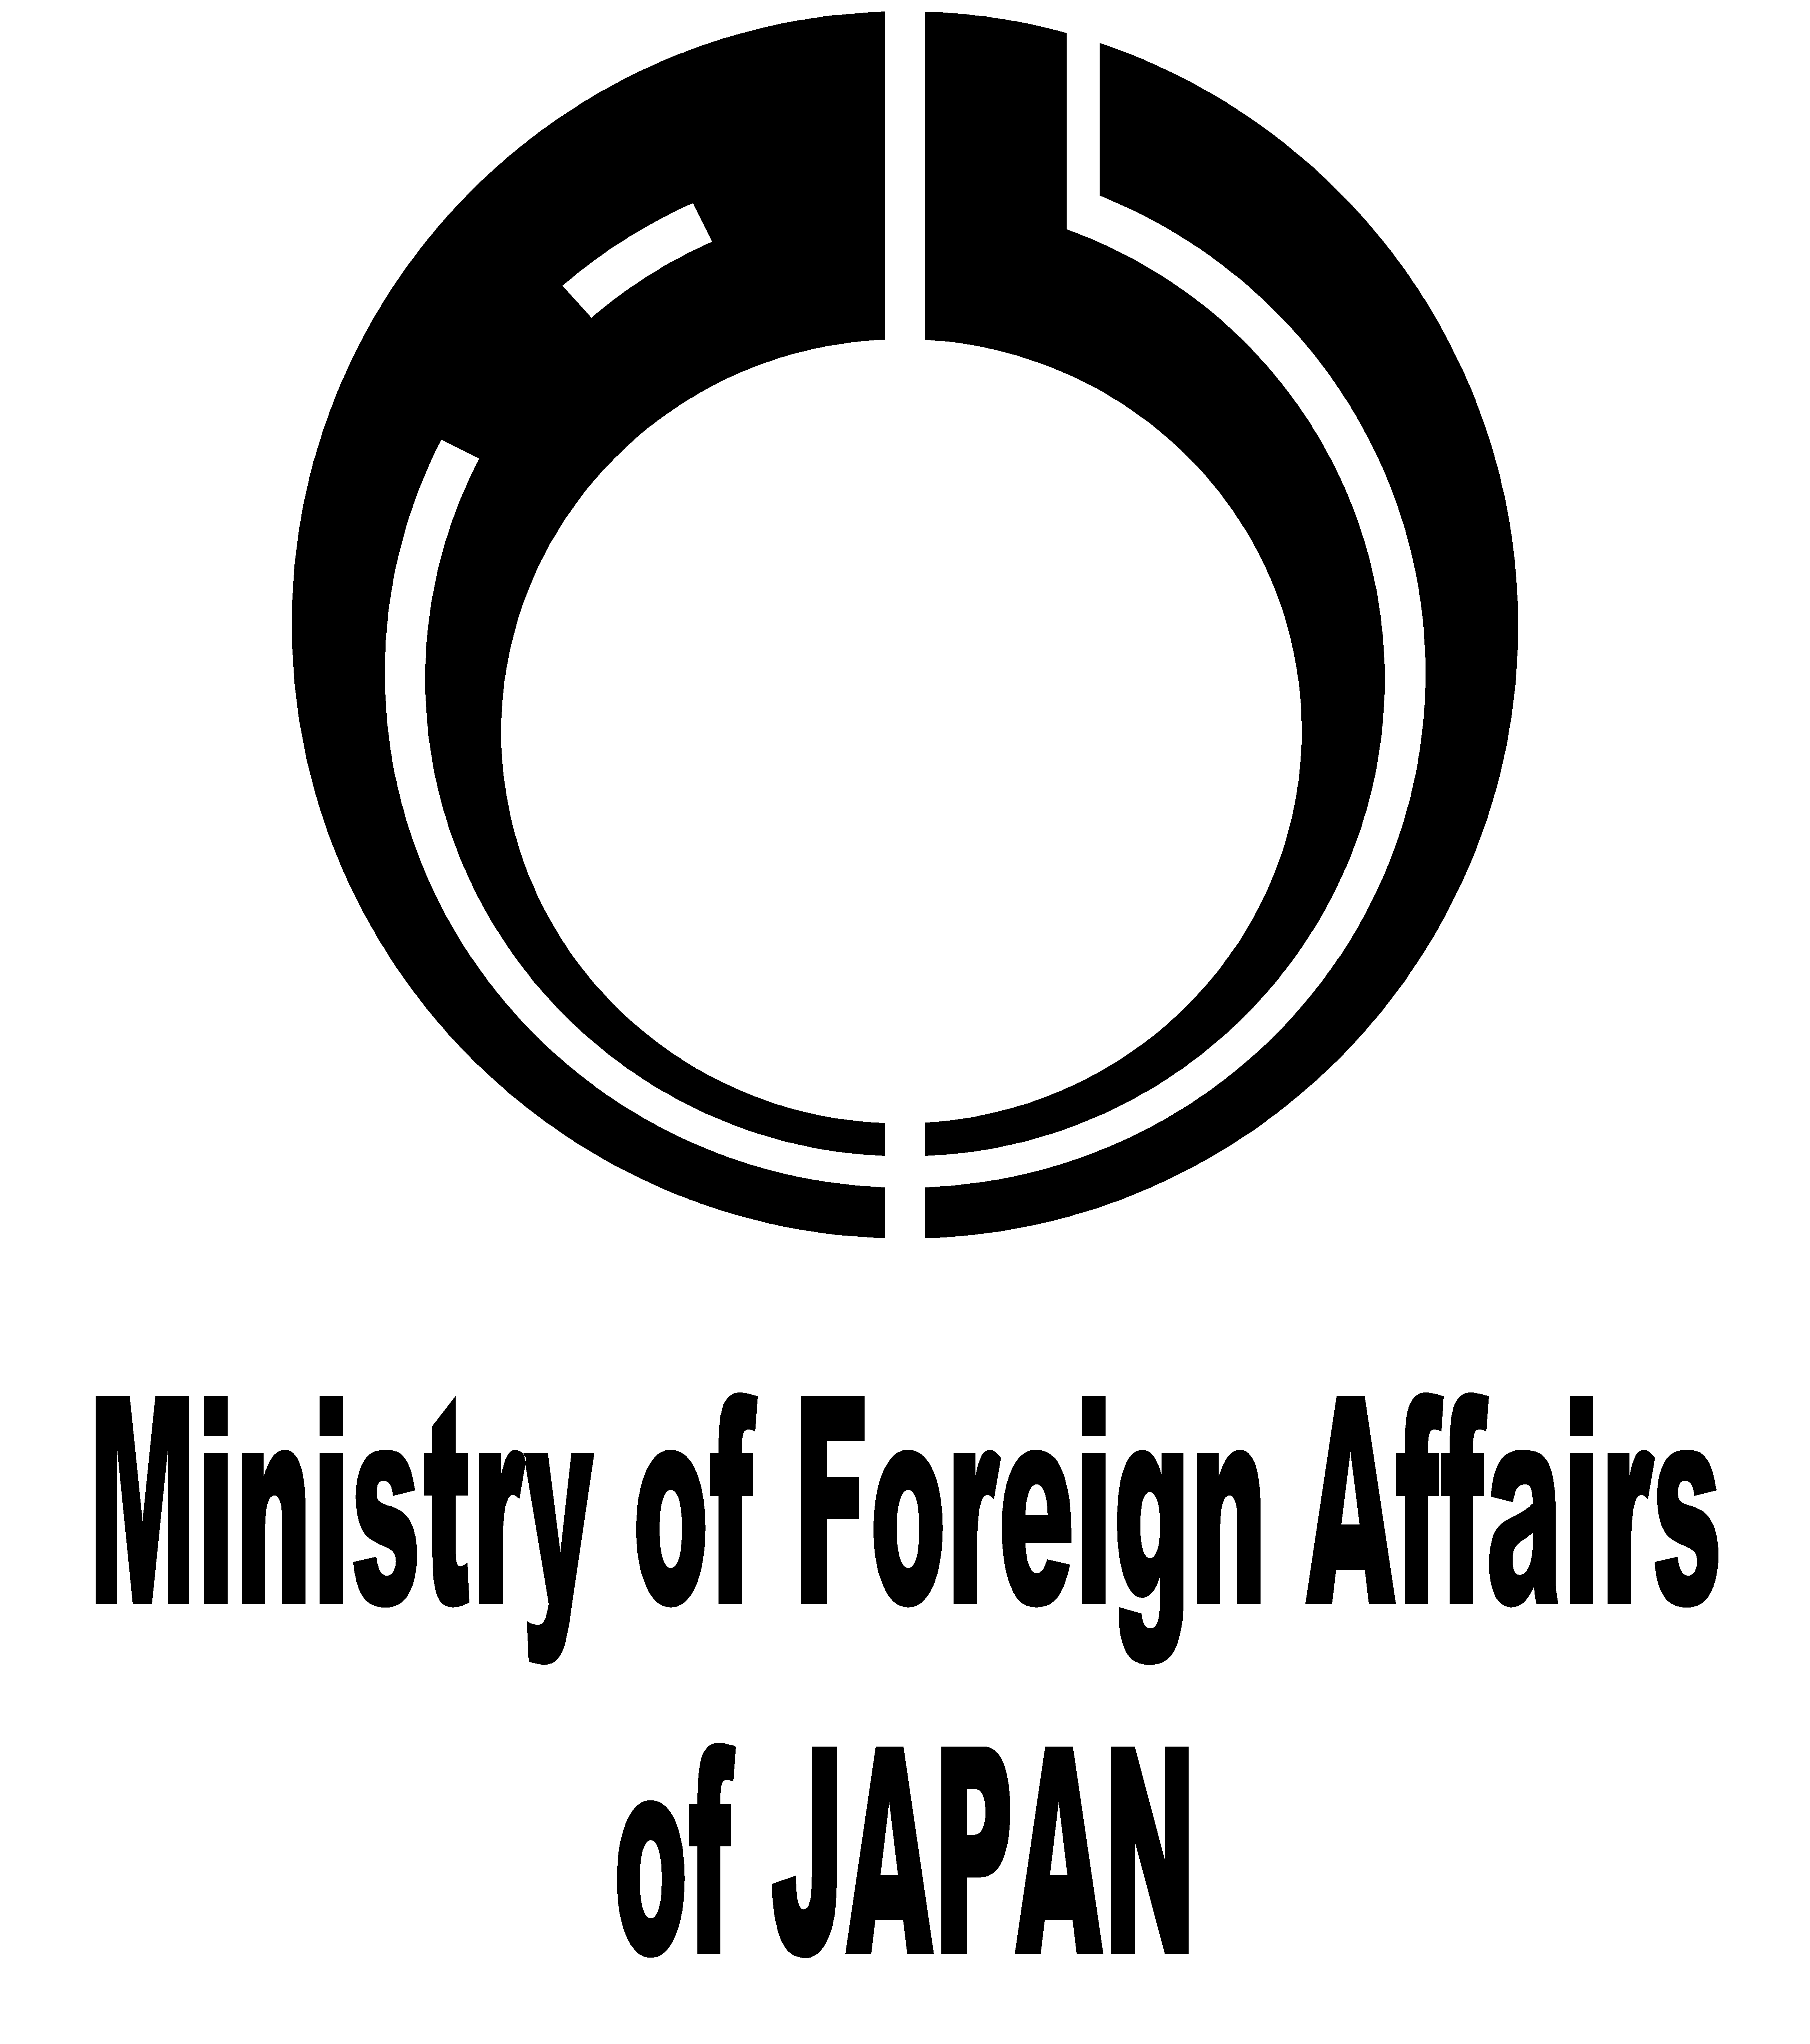 Logo of the Ministry of Foreign Affairs of Japan